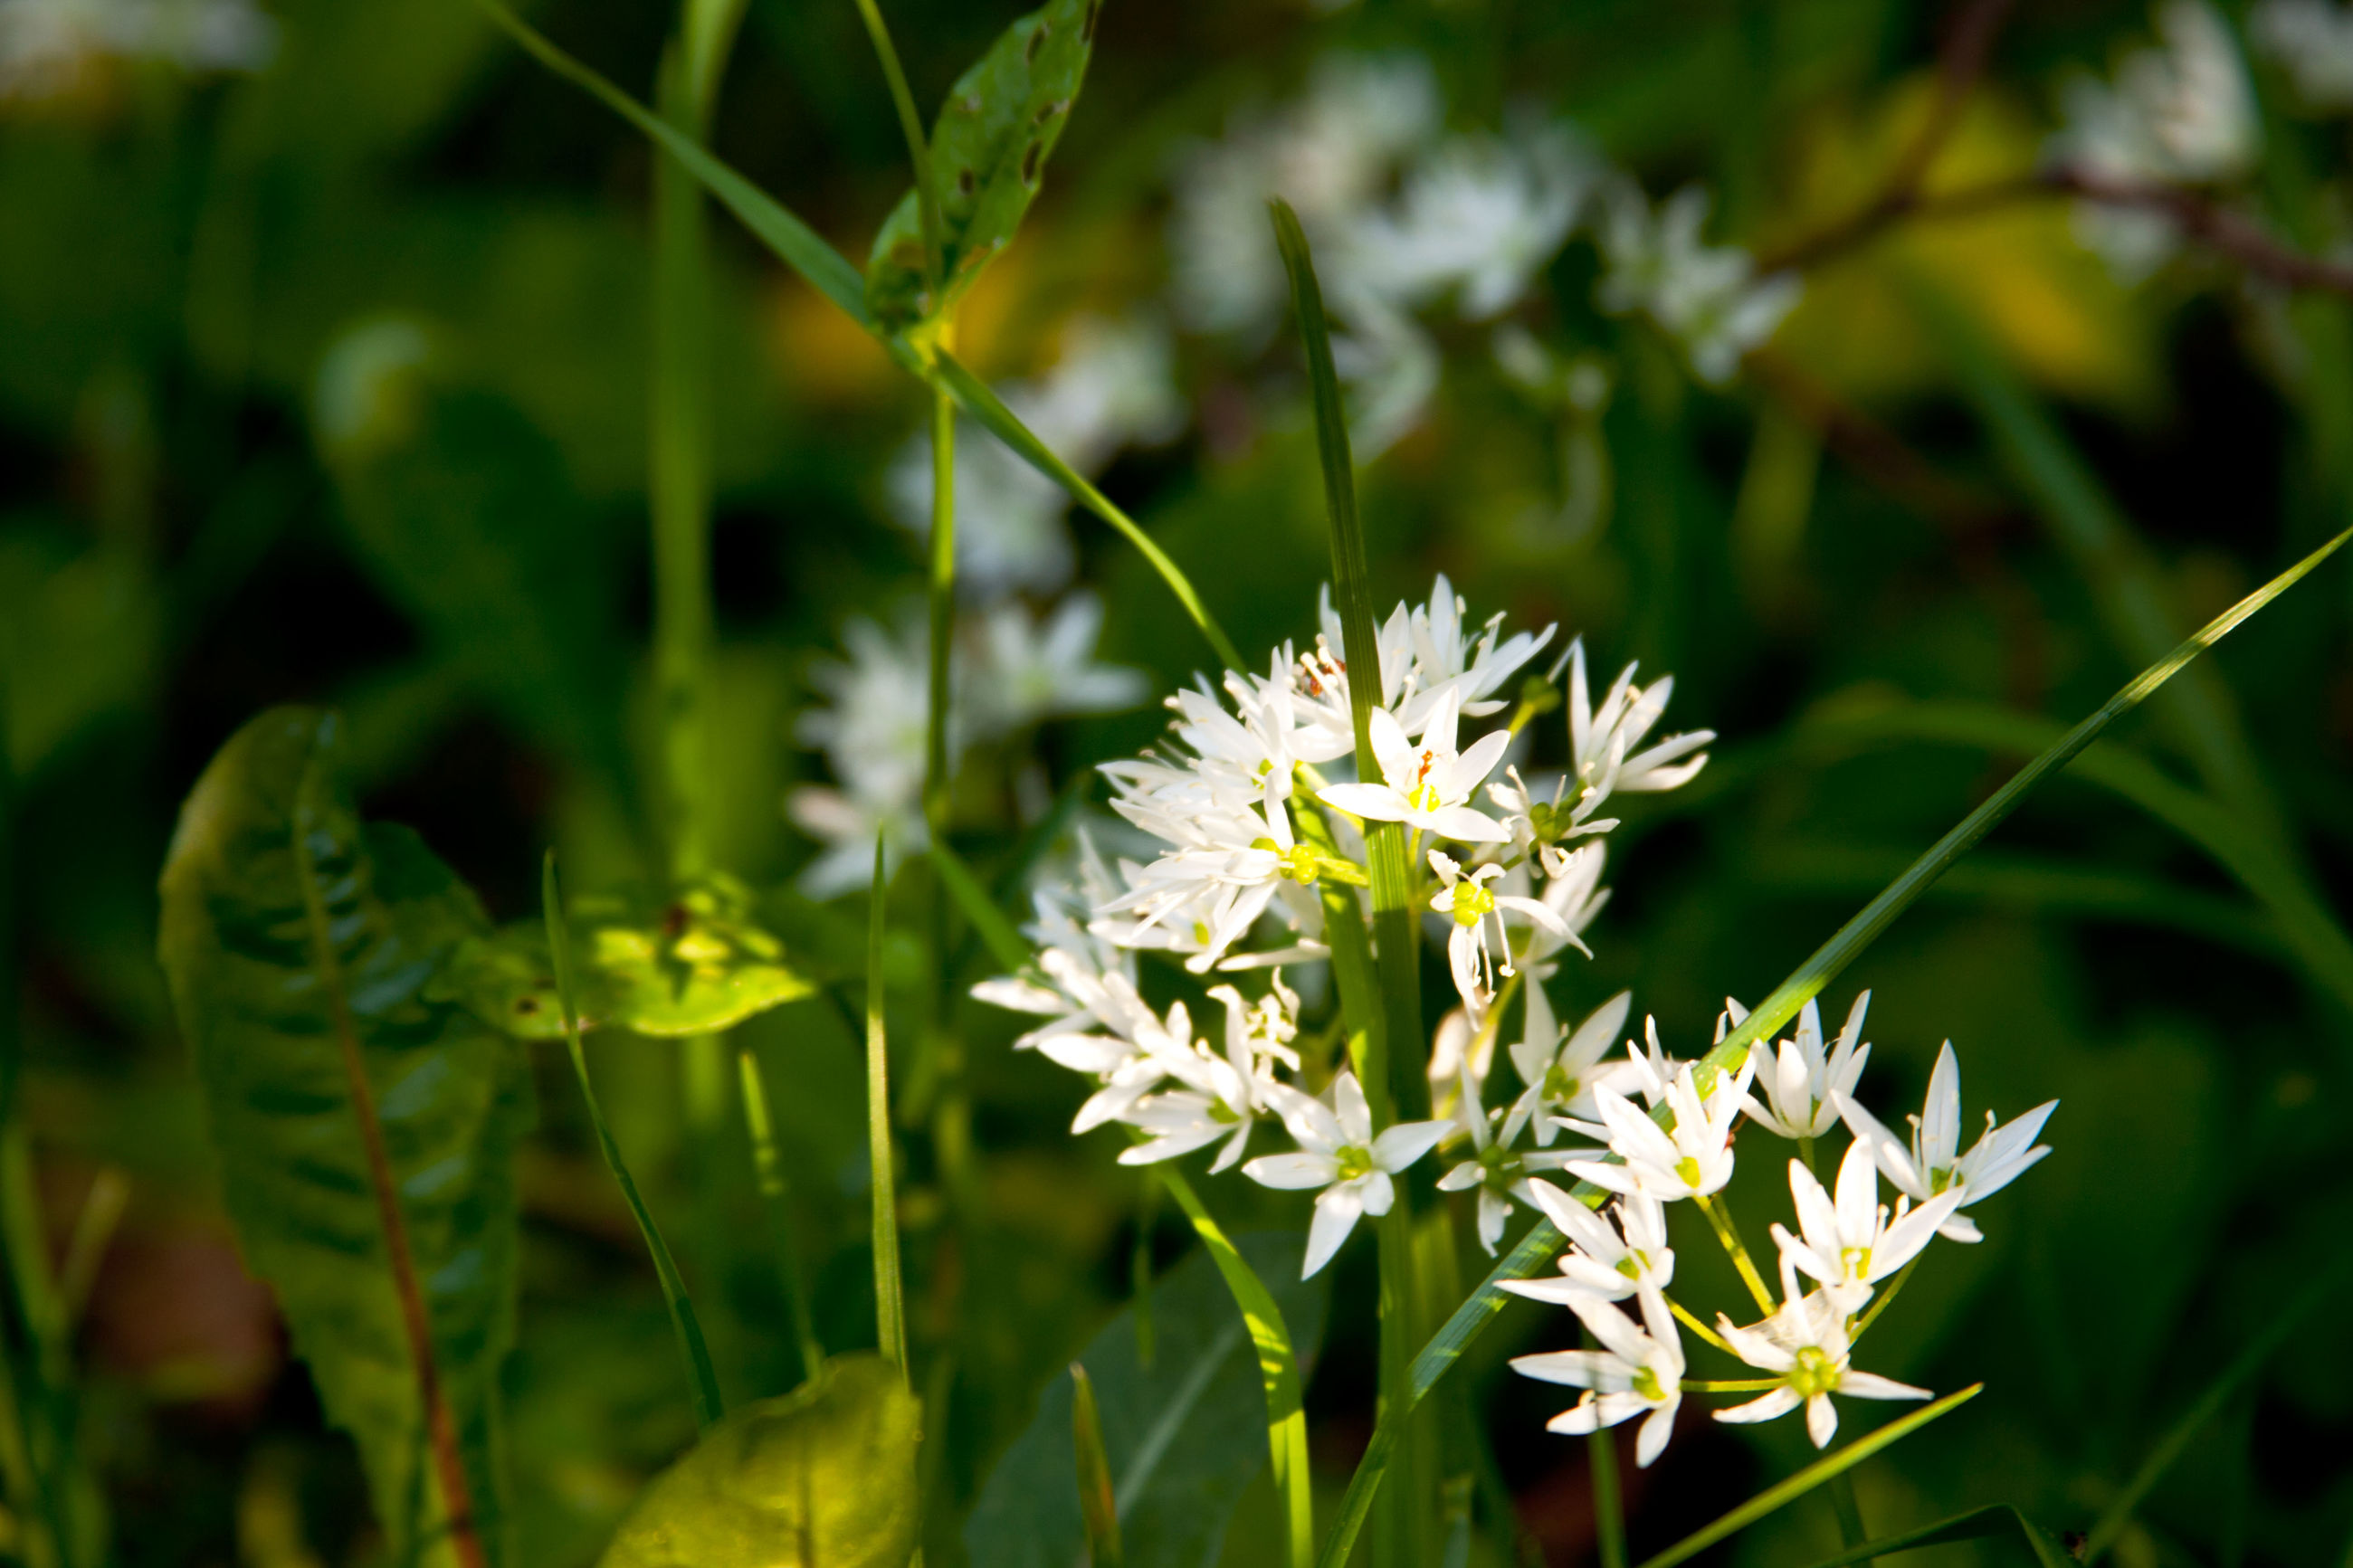 flower, flowering plant, plant, growth, fragility, beauty in nature, vulnerability, freshness, white color, flower head, petal, nature, close-up, focus on foreground, inflorescence, green color, day, no people, plant part, leaf, outdoors